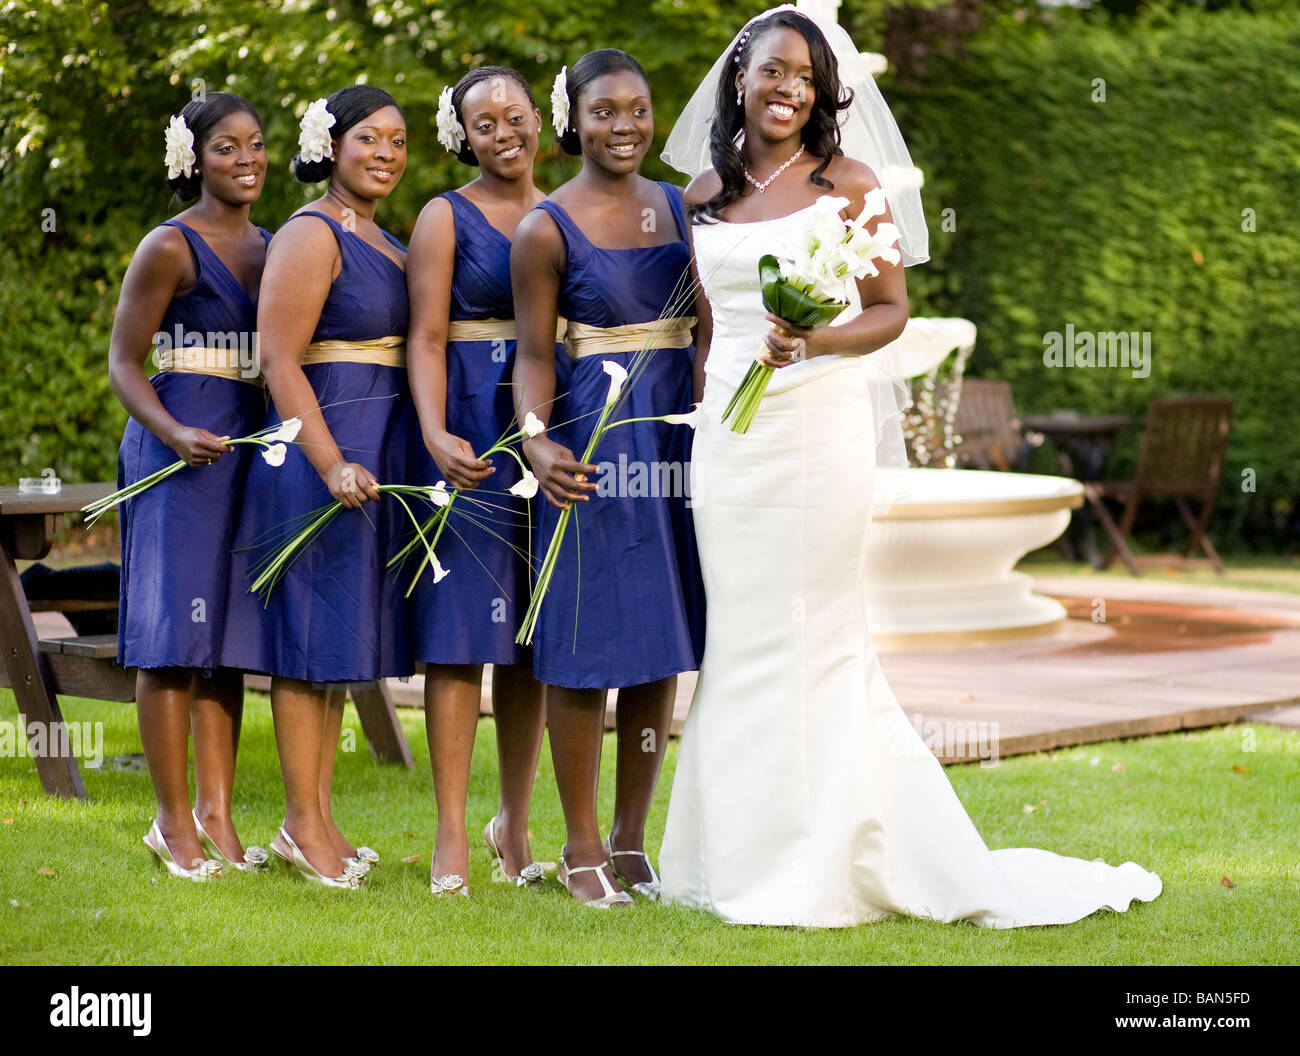 A Bride With Her Four Bridesmaids Pose For Photos At A Wedding In